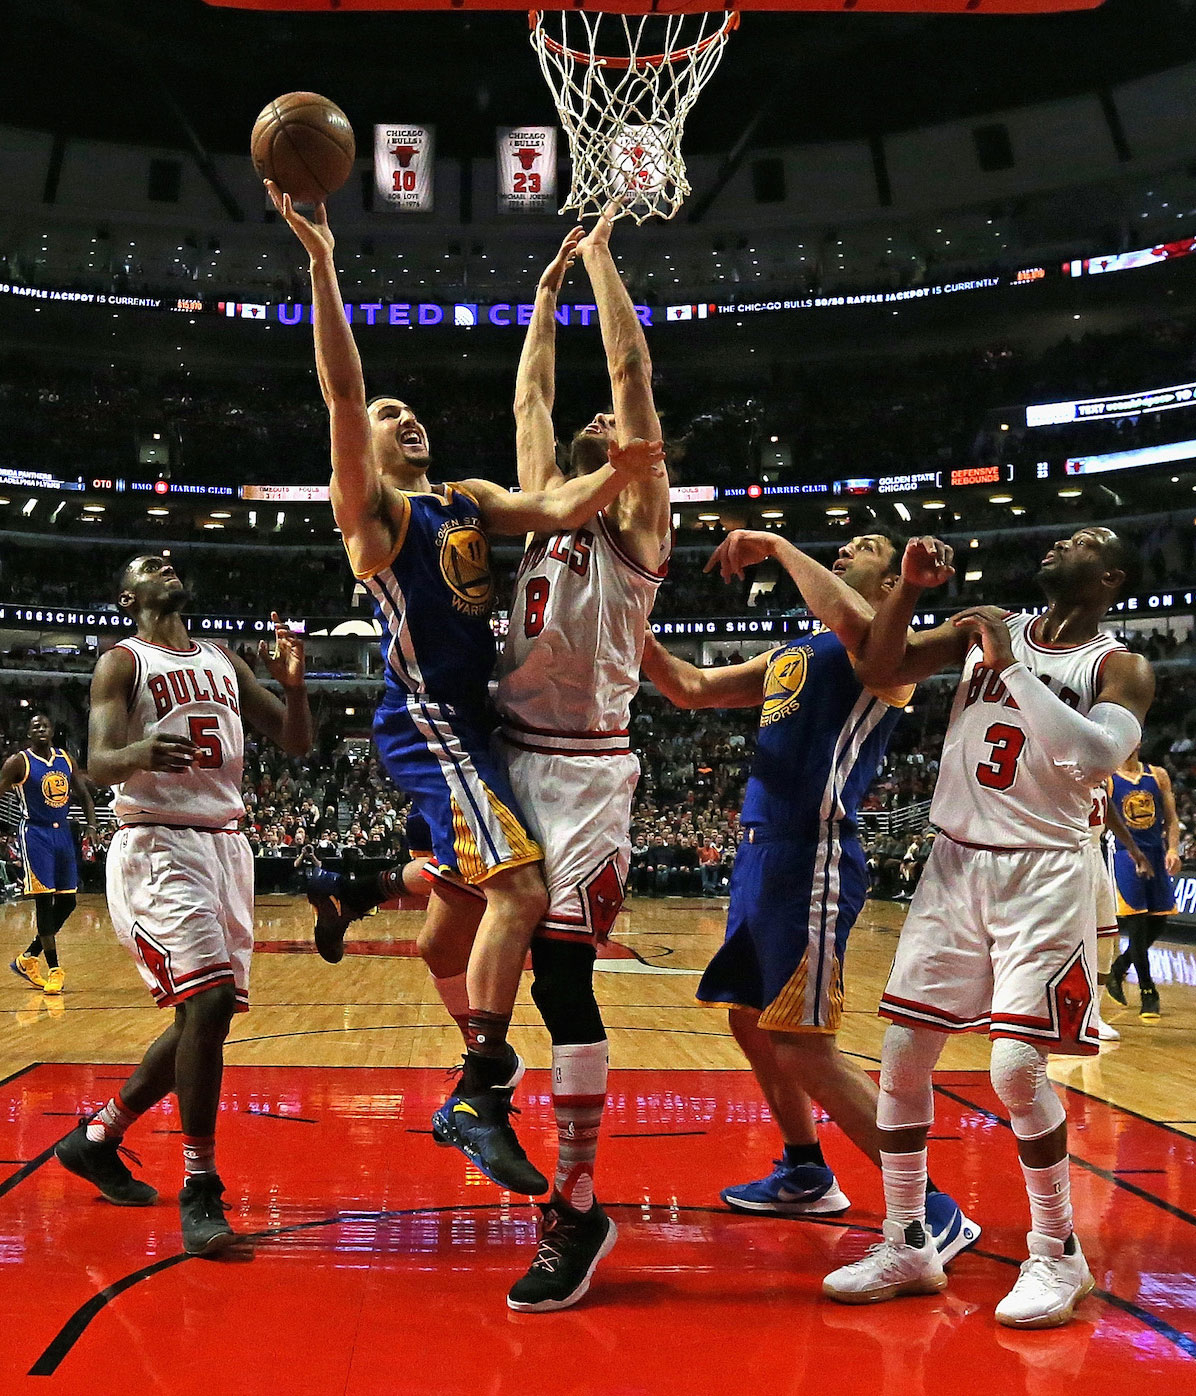 Klay Thompson #11 of the Golden State Warriors puts up a shot against Robin Lopez #8 of the Chicago Bulls